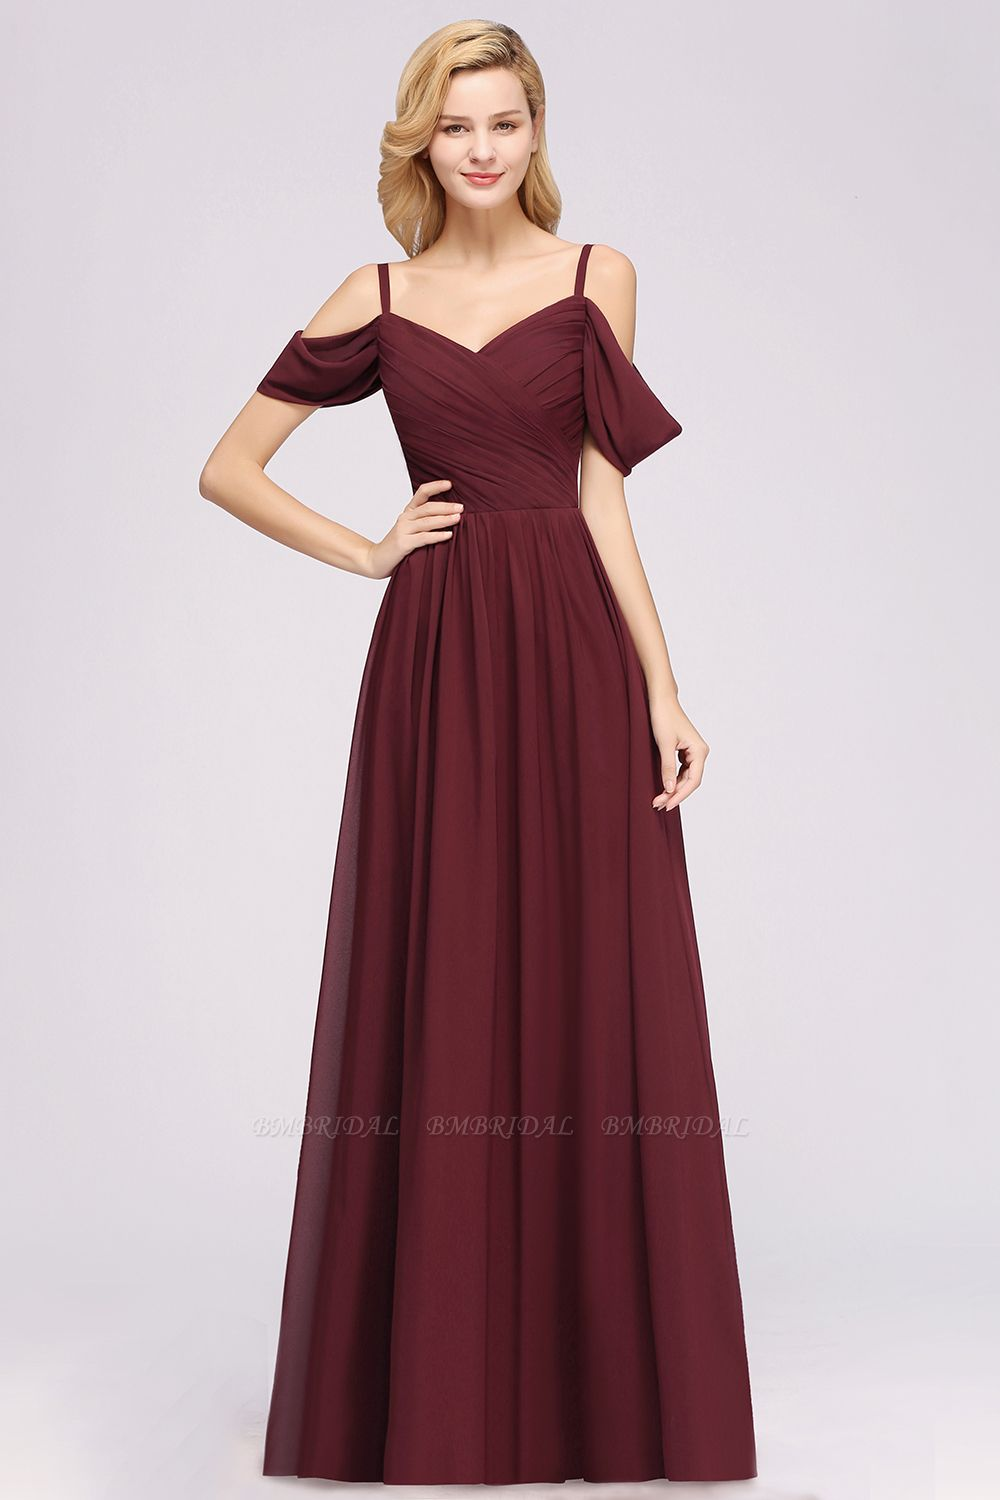 Chic Off-the-shoulder Burgundy Bridesmaid Dress with Spaghetti Straps